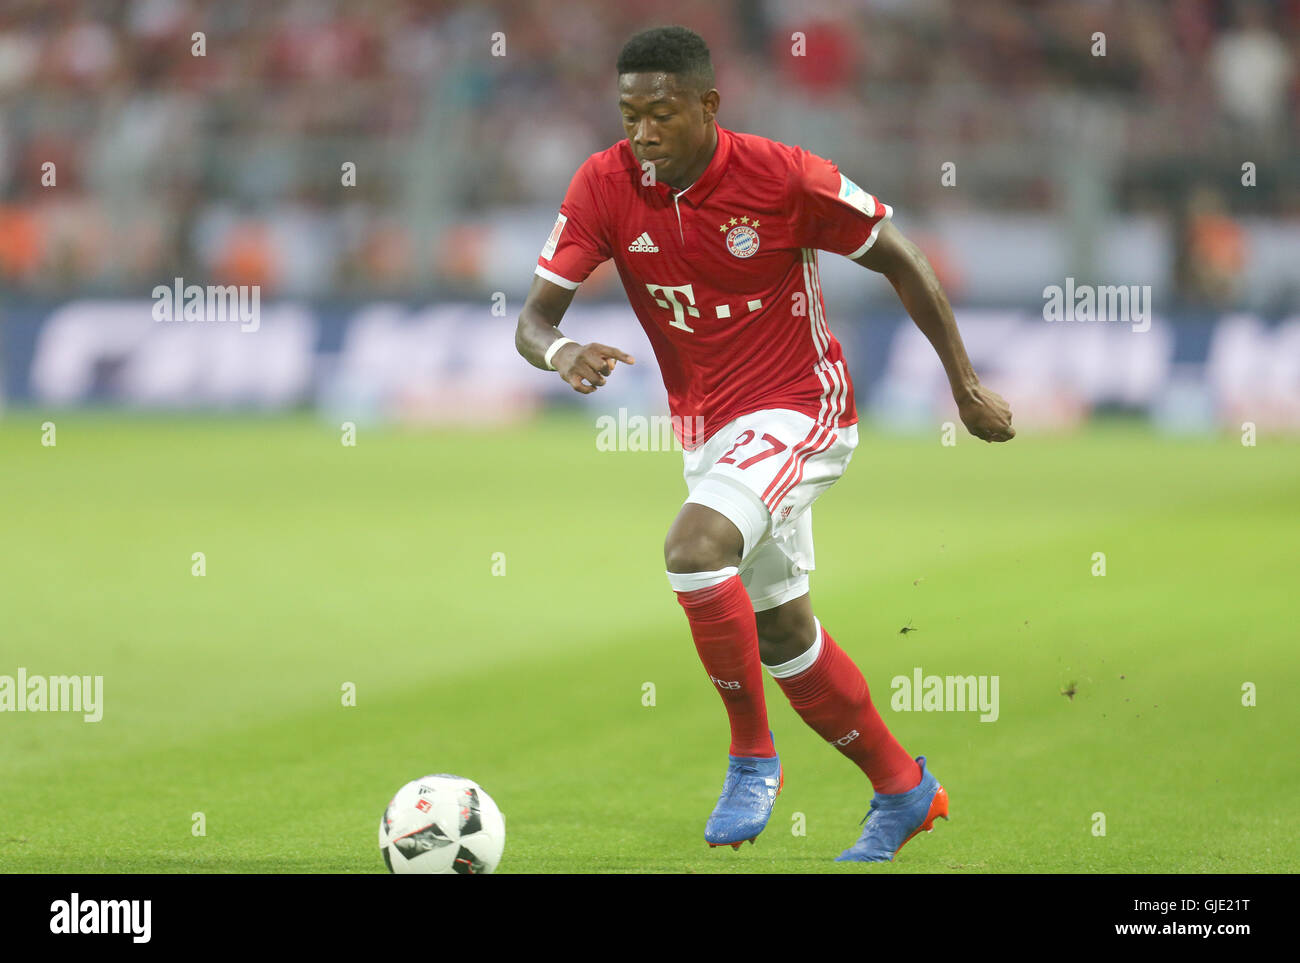 Munich's David Alaba in action during the DFL Supercup soccer match between Borussia Dortmund and Bayern Munich - Stock Image